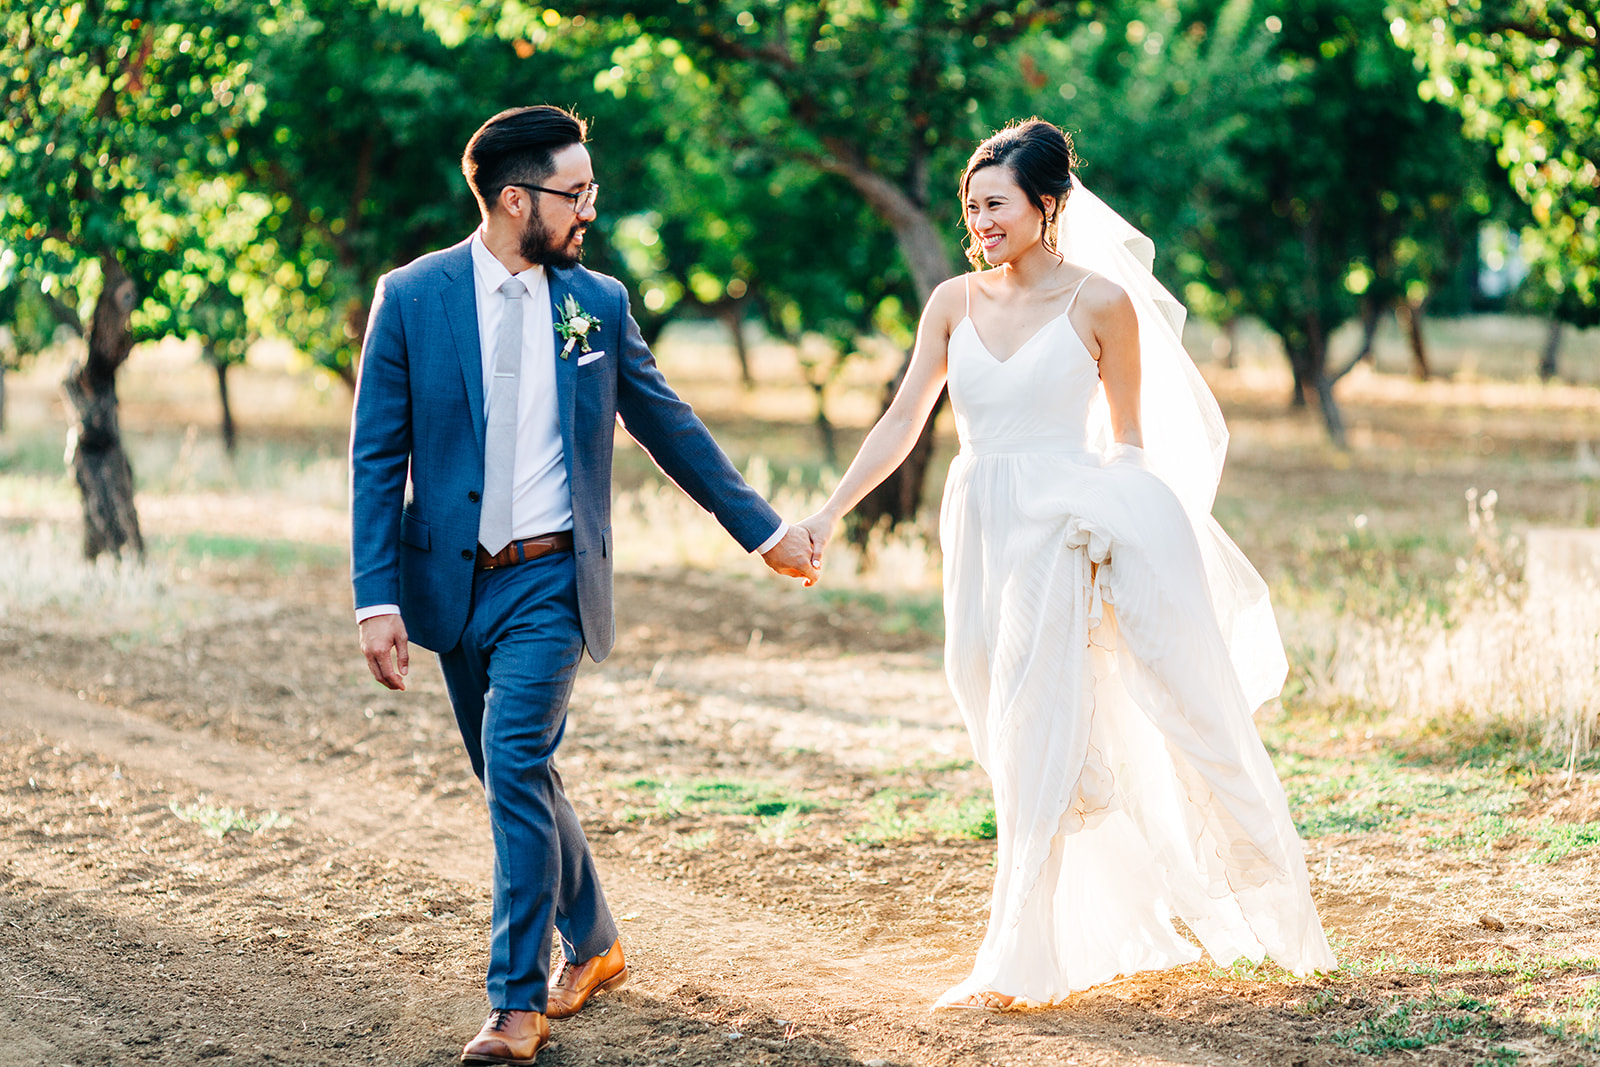 Los-Altos-History-Museum-Wedding_Orange-County-Wedding-Photographer_Clarisse-Rae-Photo-Video_85